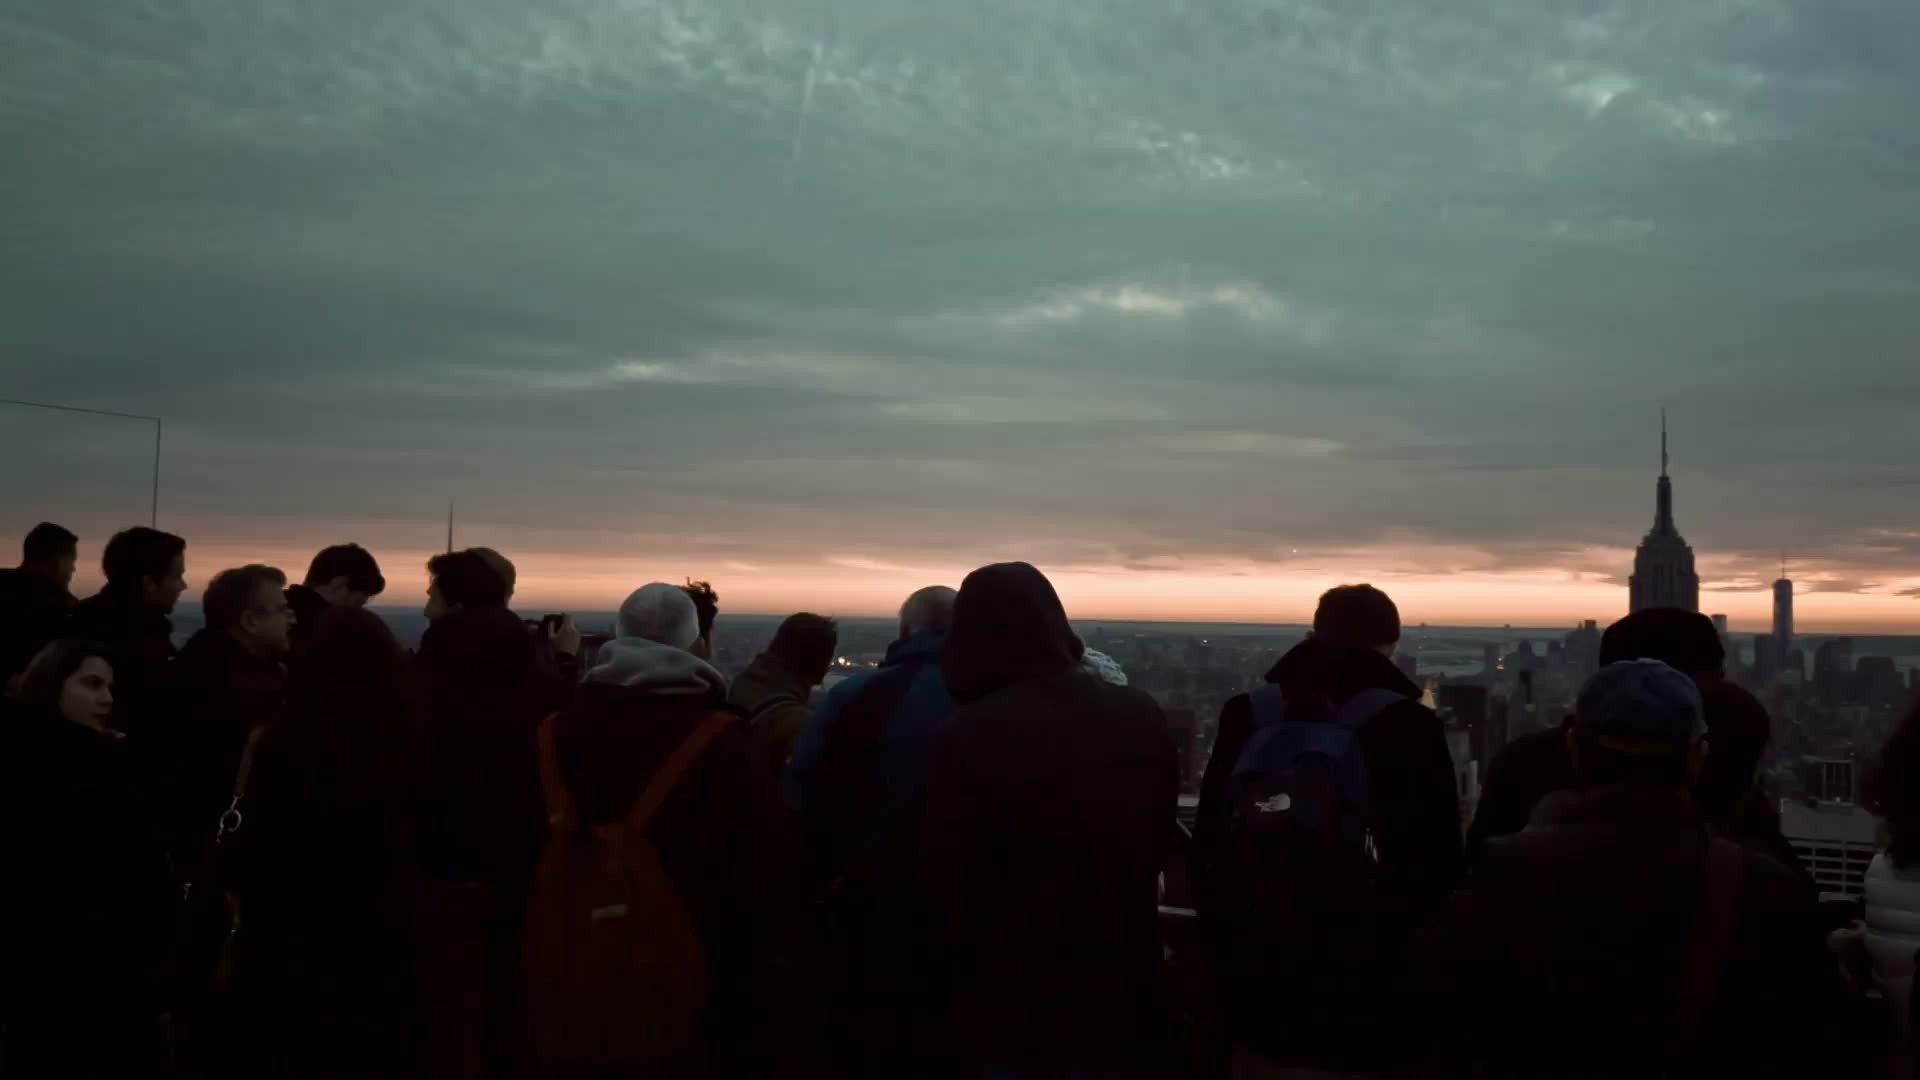 silhouettes of tourists looking at Manhattan cityscape from observation deck high up on chilly fall day at sunset in NYC